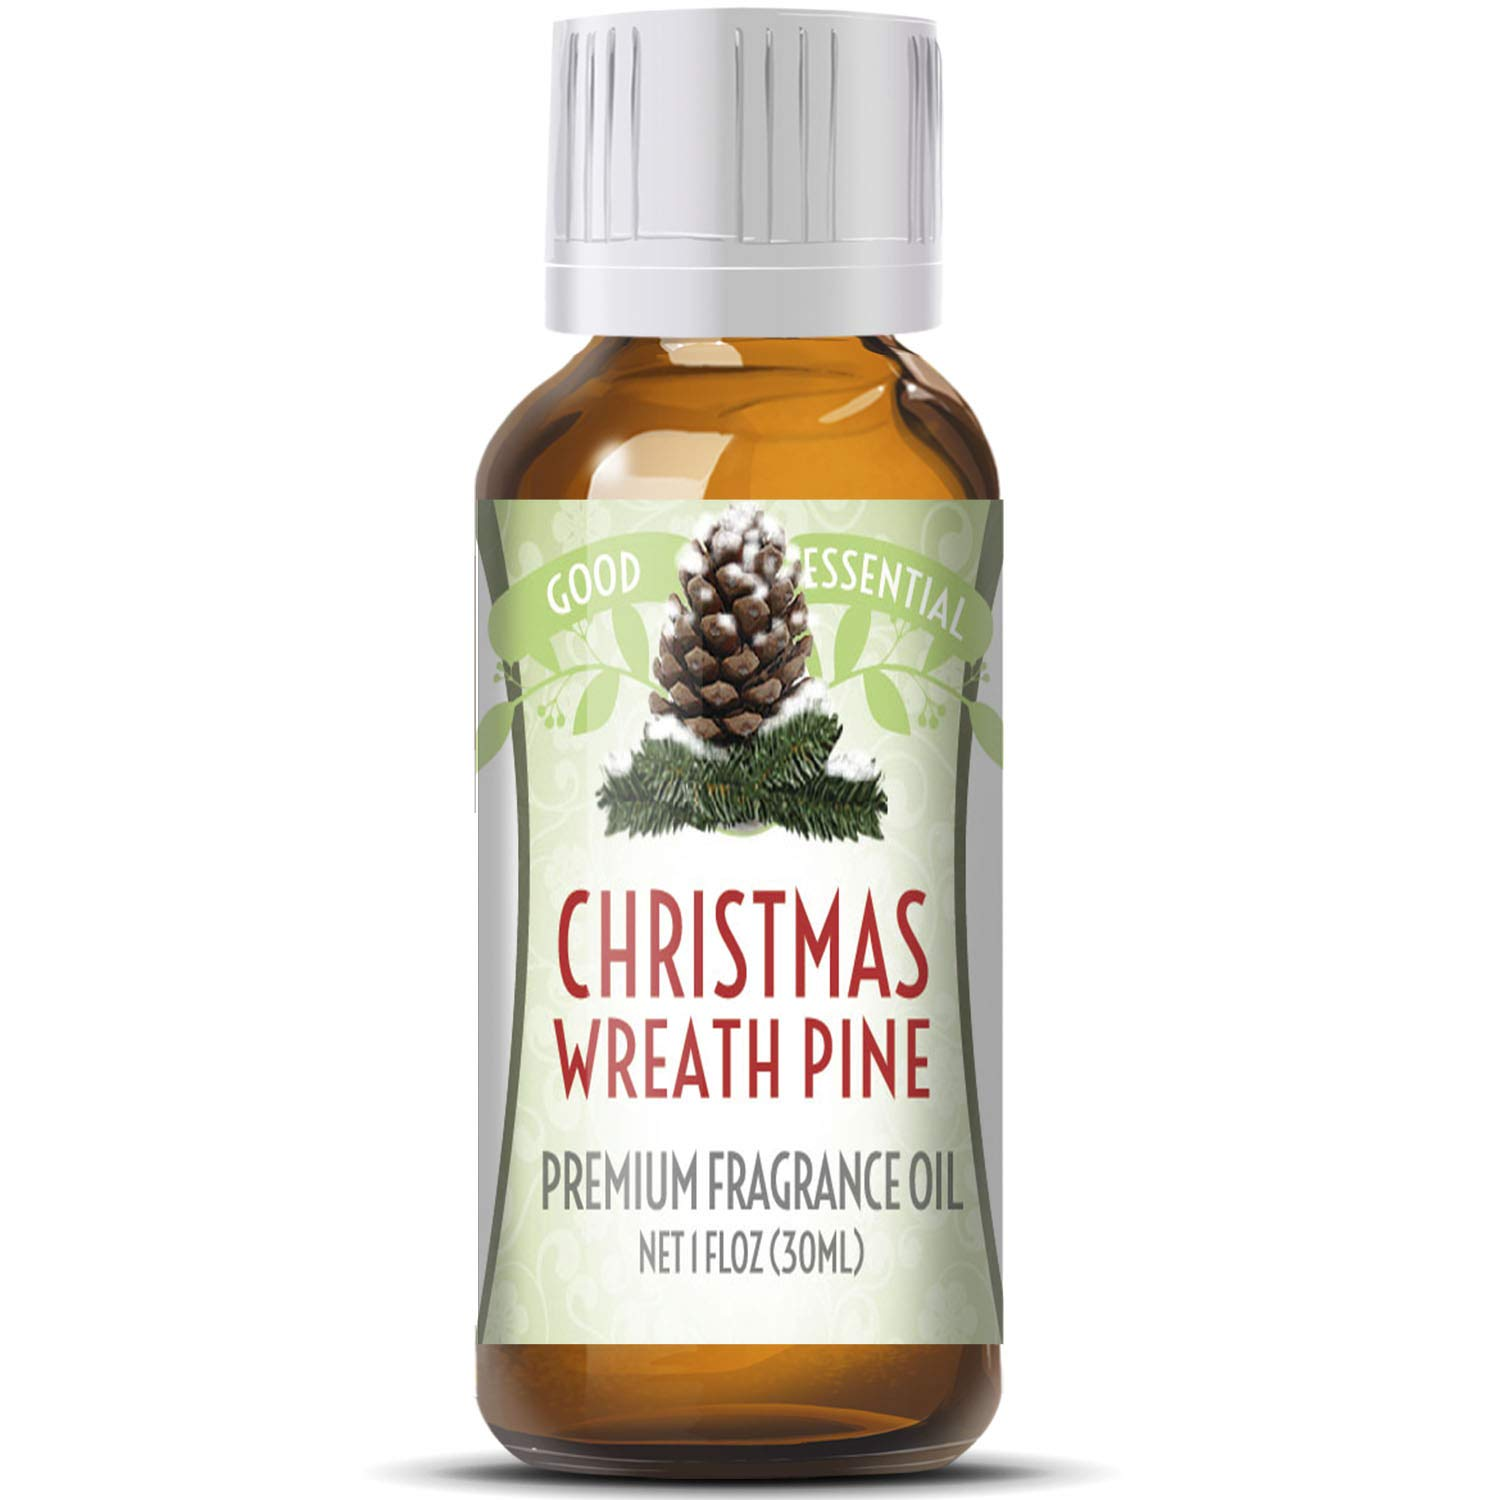 Christmas Wreath Scented Oil by Good Essential (Huge 1oz Bottle - Premium Grade Fragrance Oil) - Perfect for Aromatherapy, Soaps, Candles, Slime, Lotions, and More!